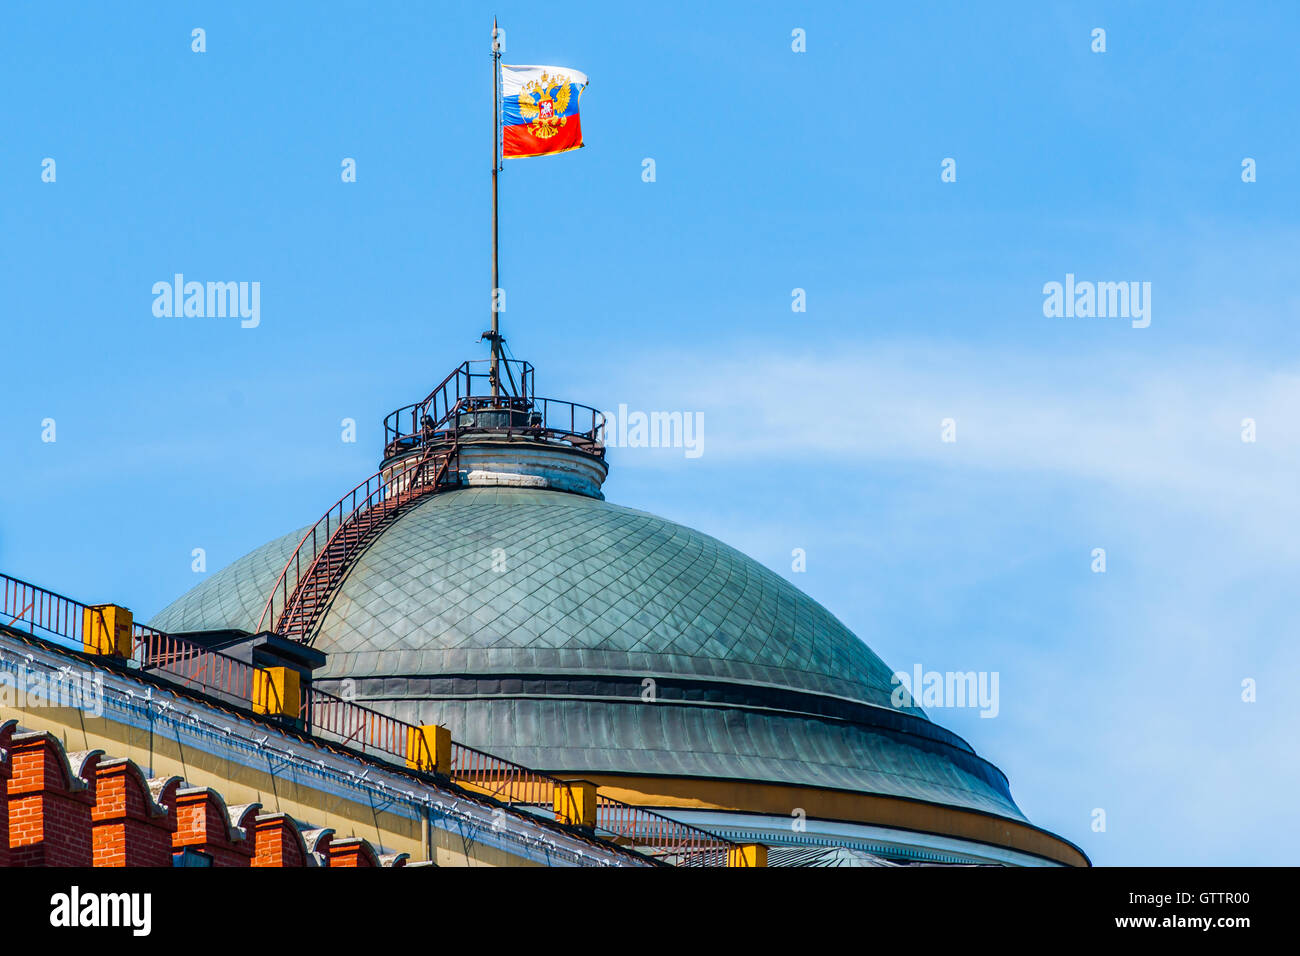 Dome of the Senate building of Moscow Kremlin and the three color flag - the President of the Russian Federation - Stock Image